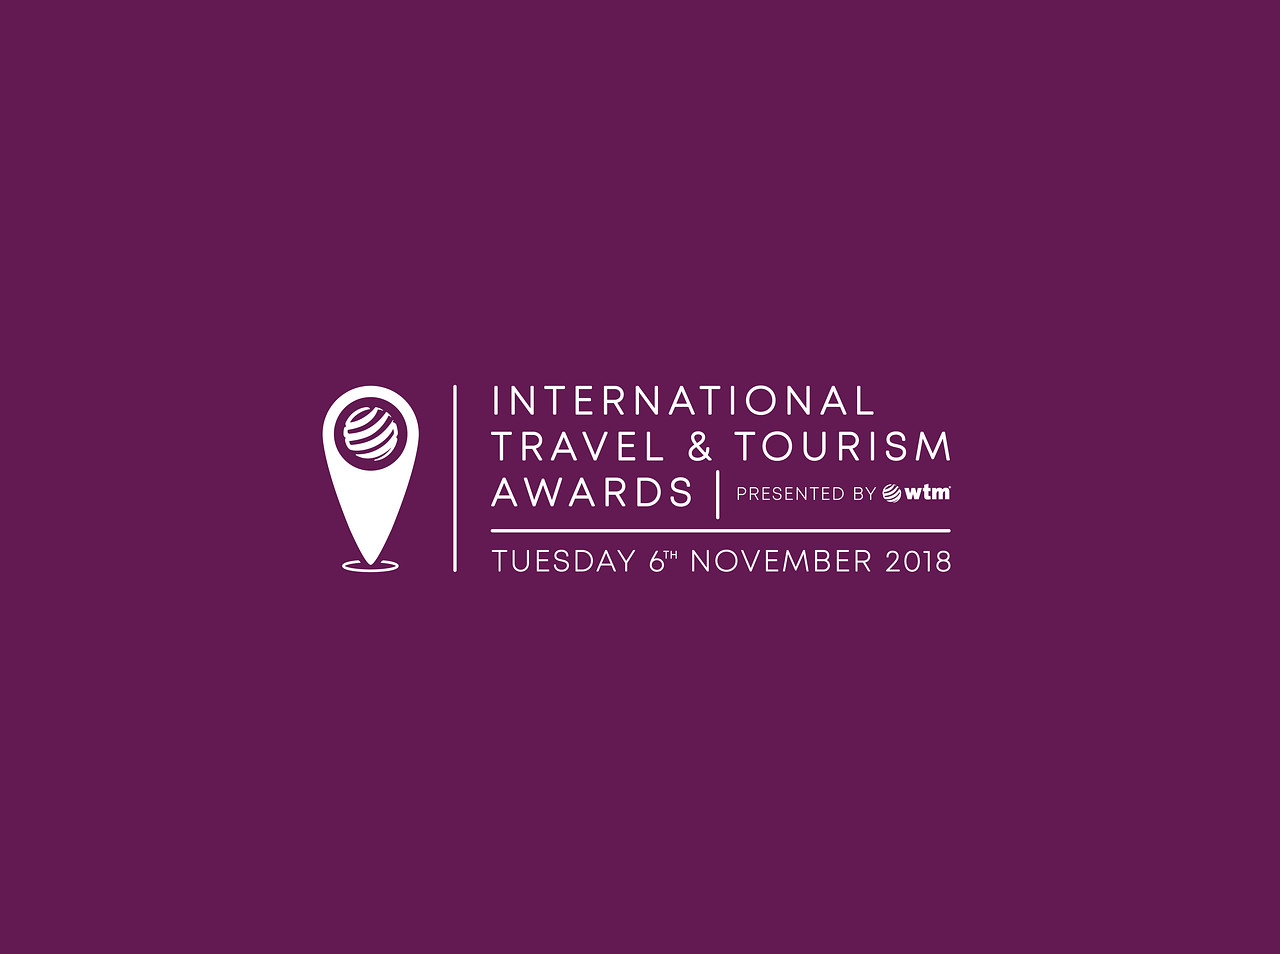 Empresas e Órgãos turísticos Latino Americanos estão entre os finalistas do International Travel & Tourism Awards 2018